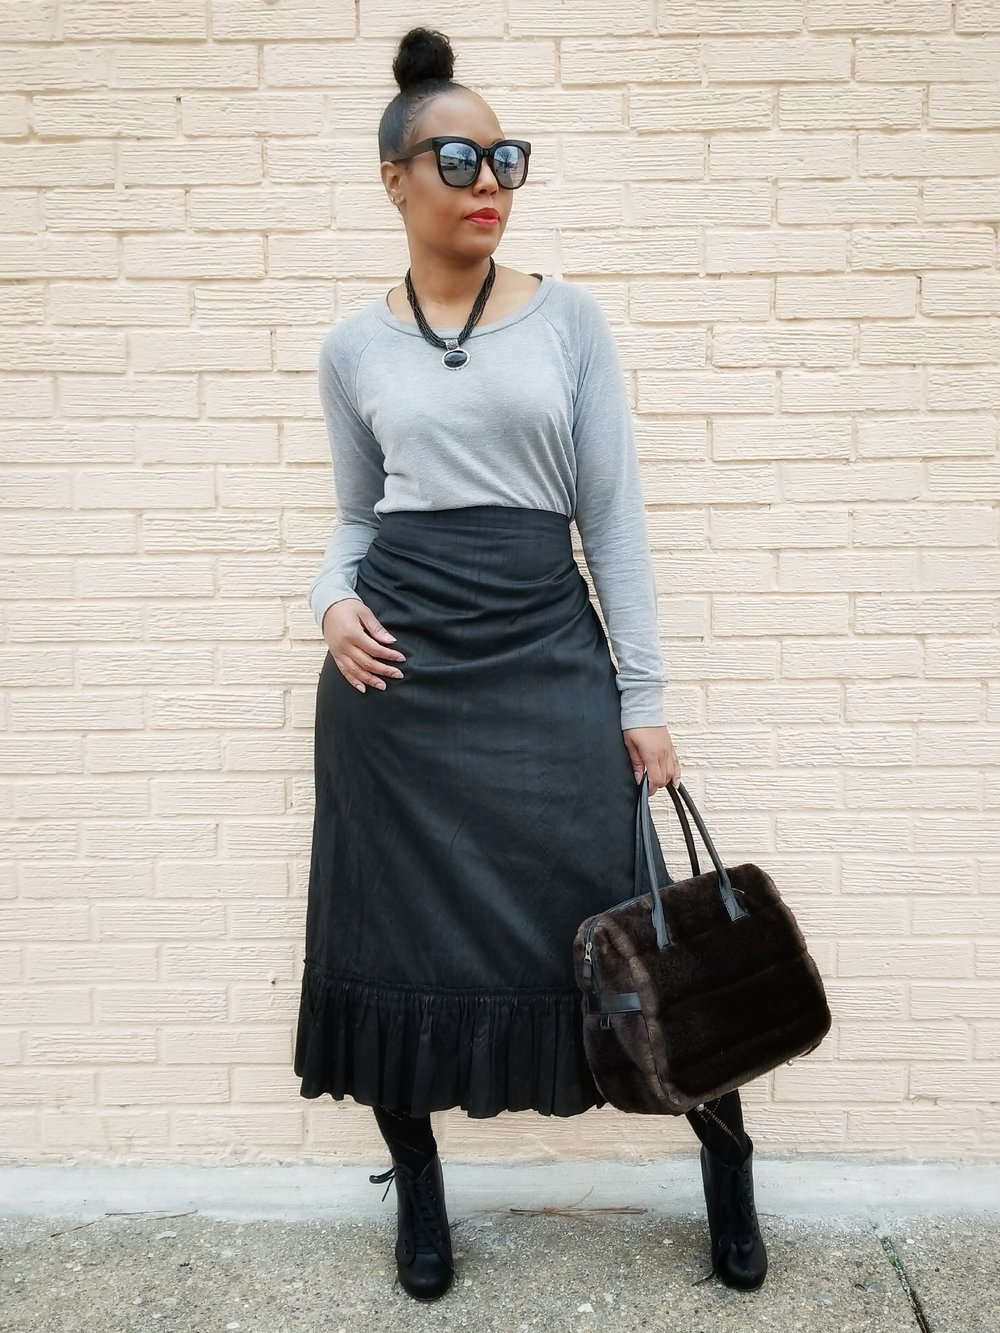 Sweatshirt (Forever21) Alternatives  here  | Skirt (old) | Booties (old)